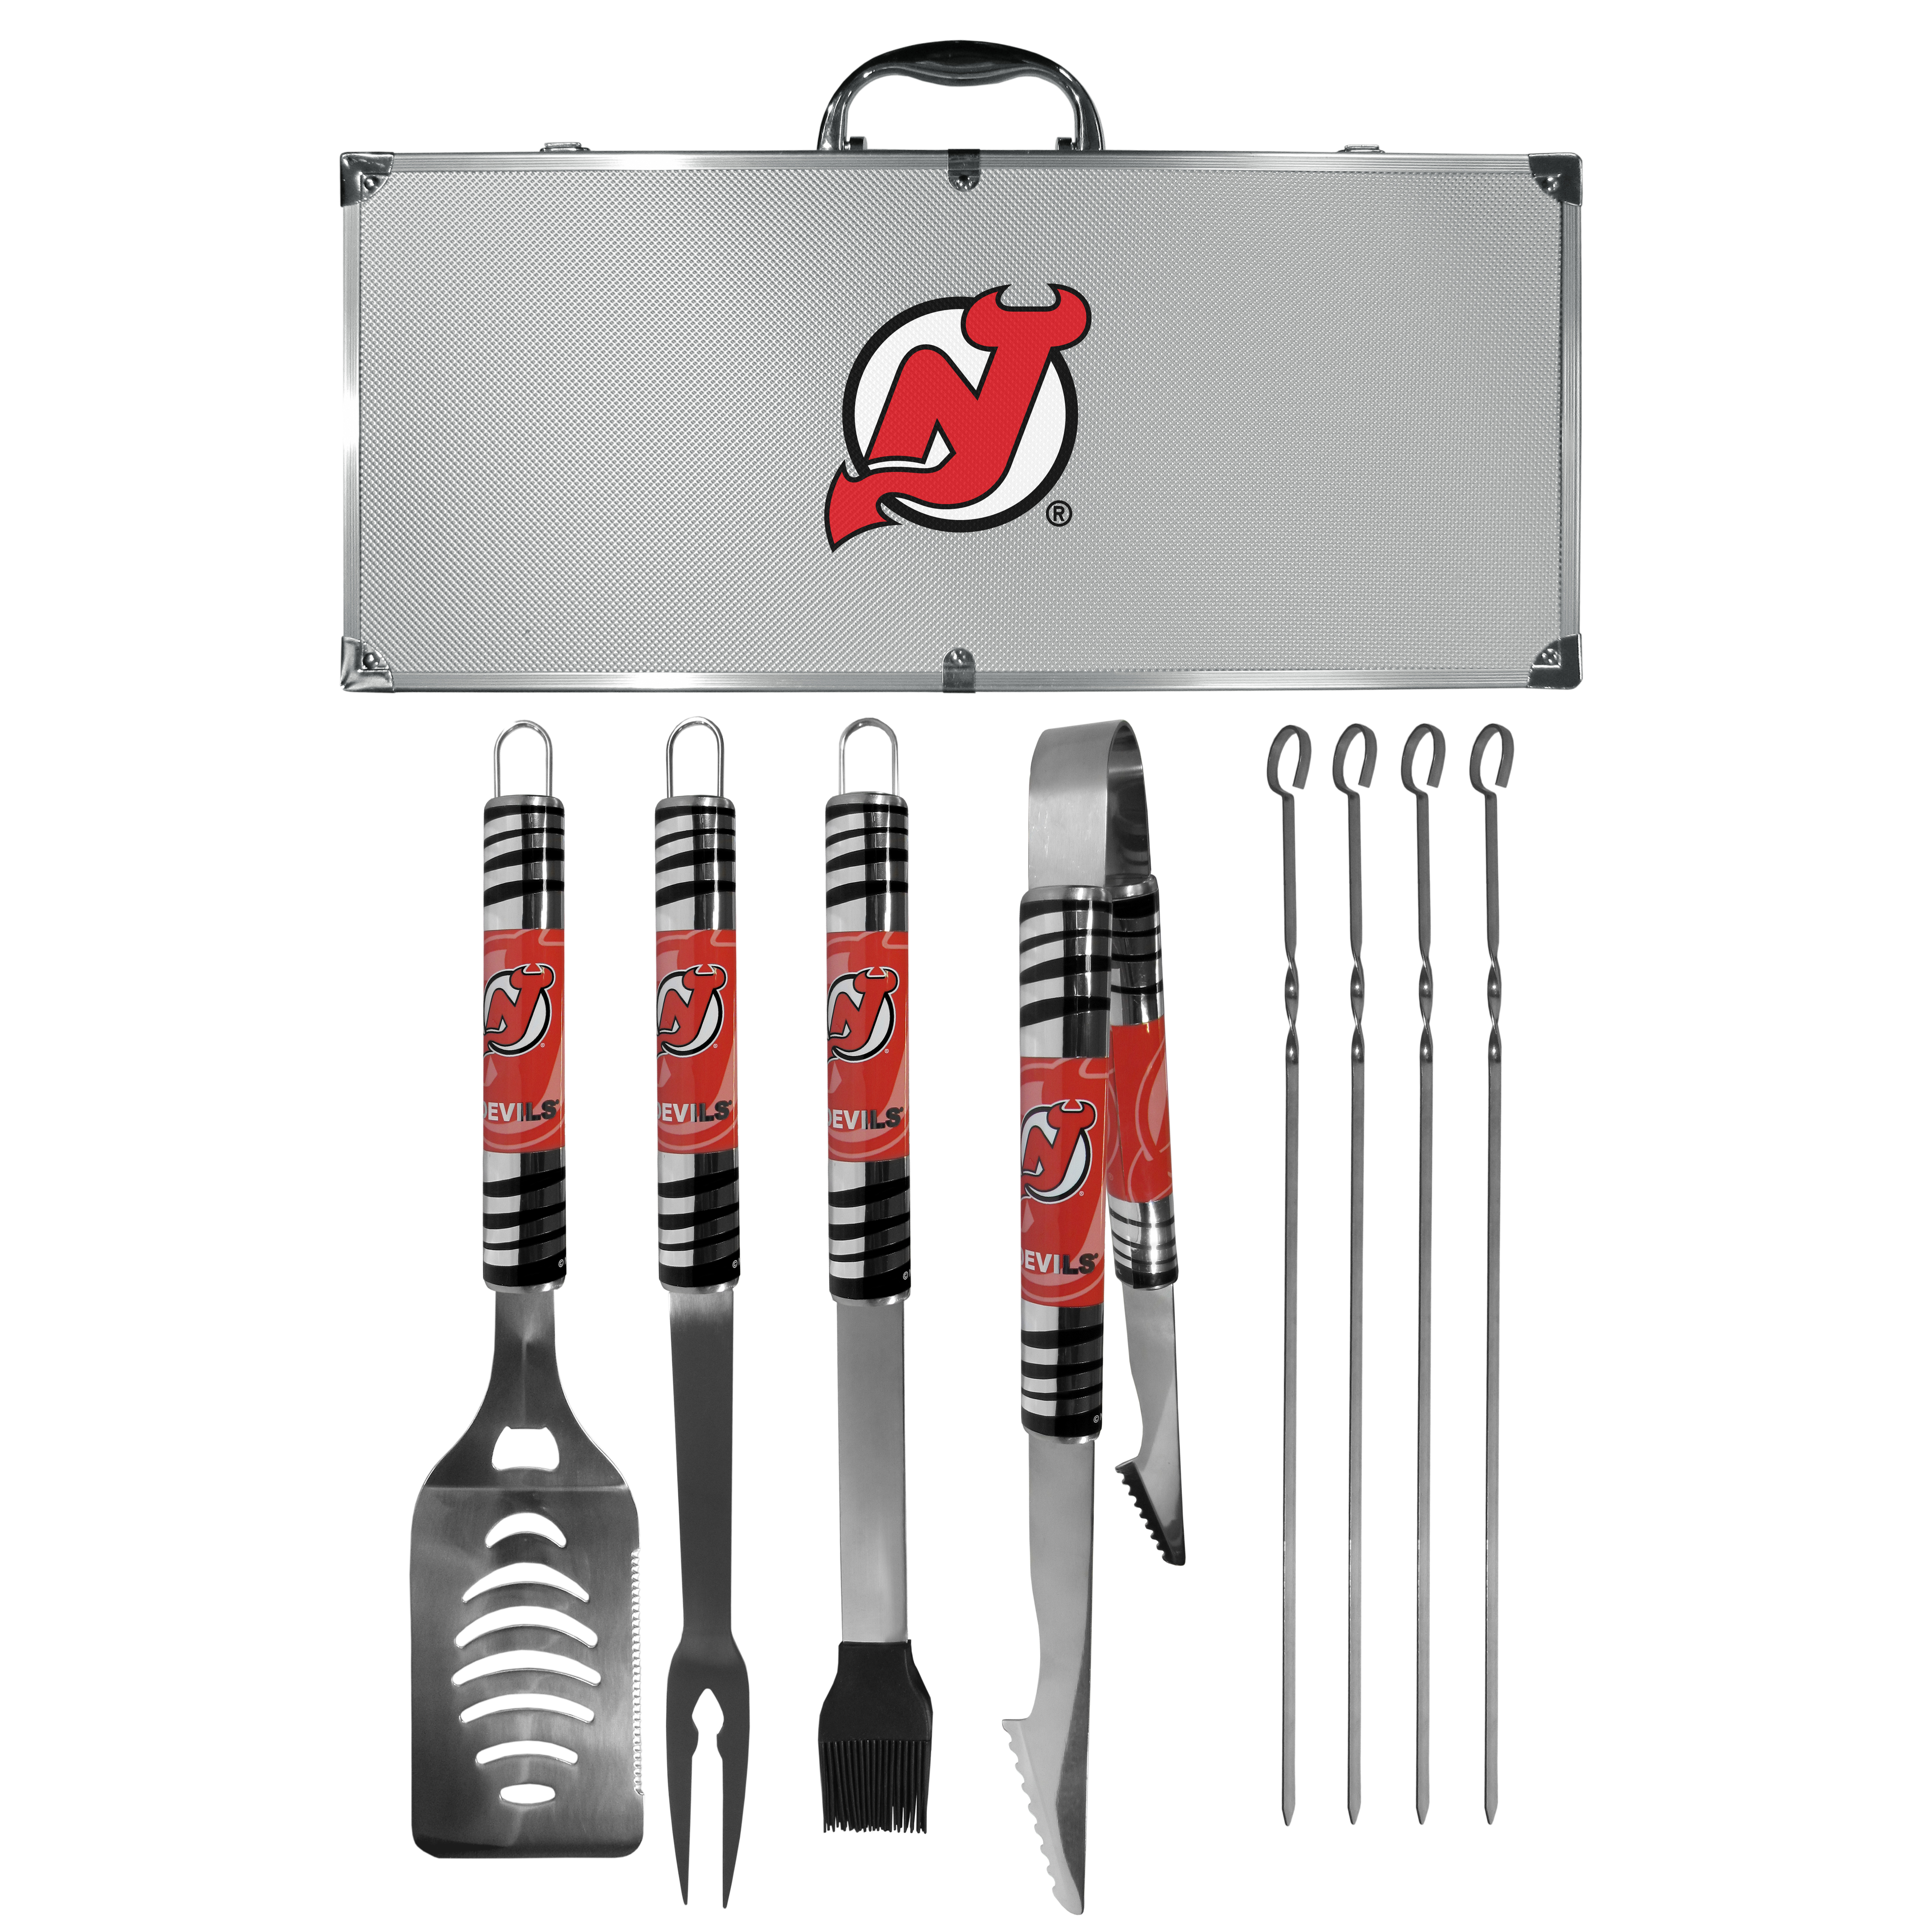 New Jersey Devils® 8 pc Tailgater BBQ Set - This is the ultimate New Jersey Devils® tailgate accessory! The high quality, 420 grade stainless steel tools are durable and well-made enough to make even the pickiest grill master smile. This complete grill accessory kit includes; 4 skewers, spatula with bottle opener and serrated knife edge, basting brush, tongs and a fork. The 18 inch metal carrying case is perfect for great outdoor use making grilling an ease while camping, tailgating or while having a game day party on your patio. The tools are 17 inches long and feature vivid team graphics. The metal case features a large team emblem with exceptional detail. This high-end men's gift is sure to be a hit as a present on Father's Day or Christmas.